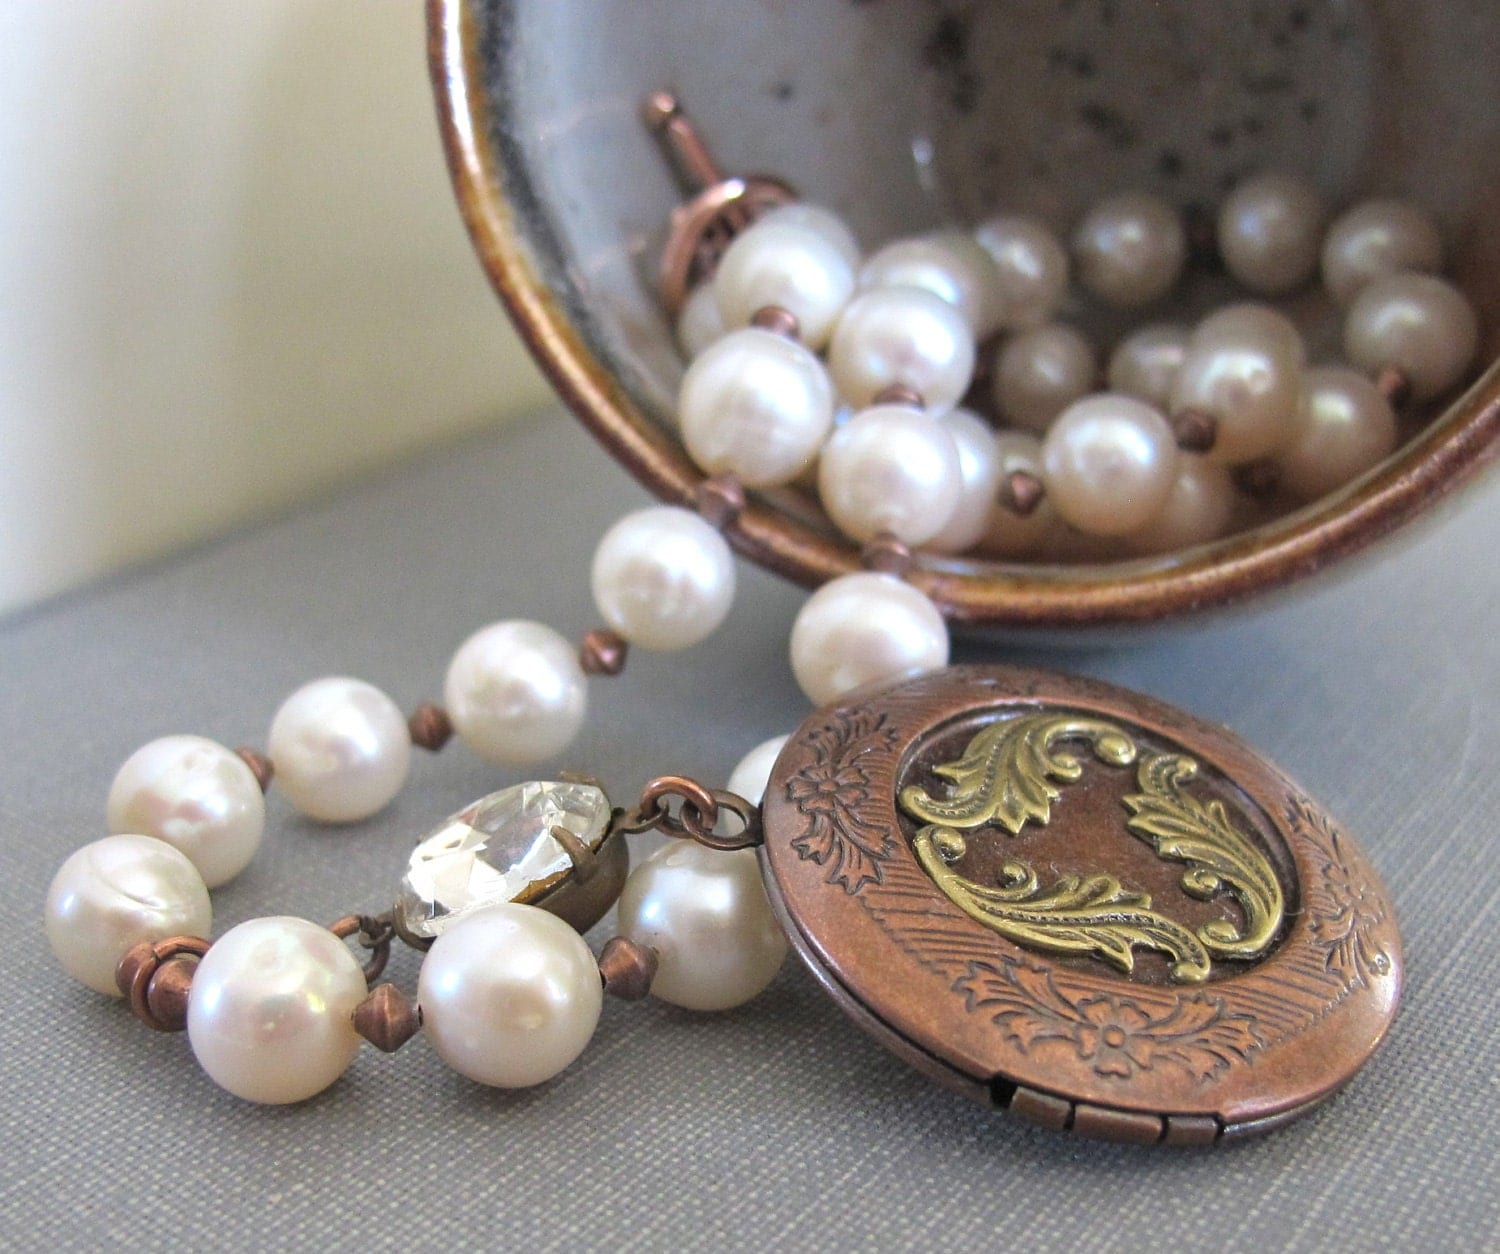 Pearl Necklace, Ivory White Pearls, Copper Necklace, Filigree Locket, Clear Rhinestone, Wedding White, Pearl Jewelry, Freshwater Pearls - fiveforty